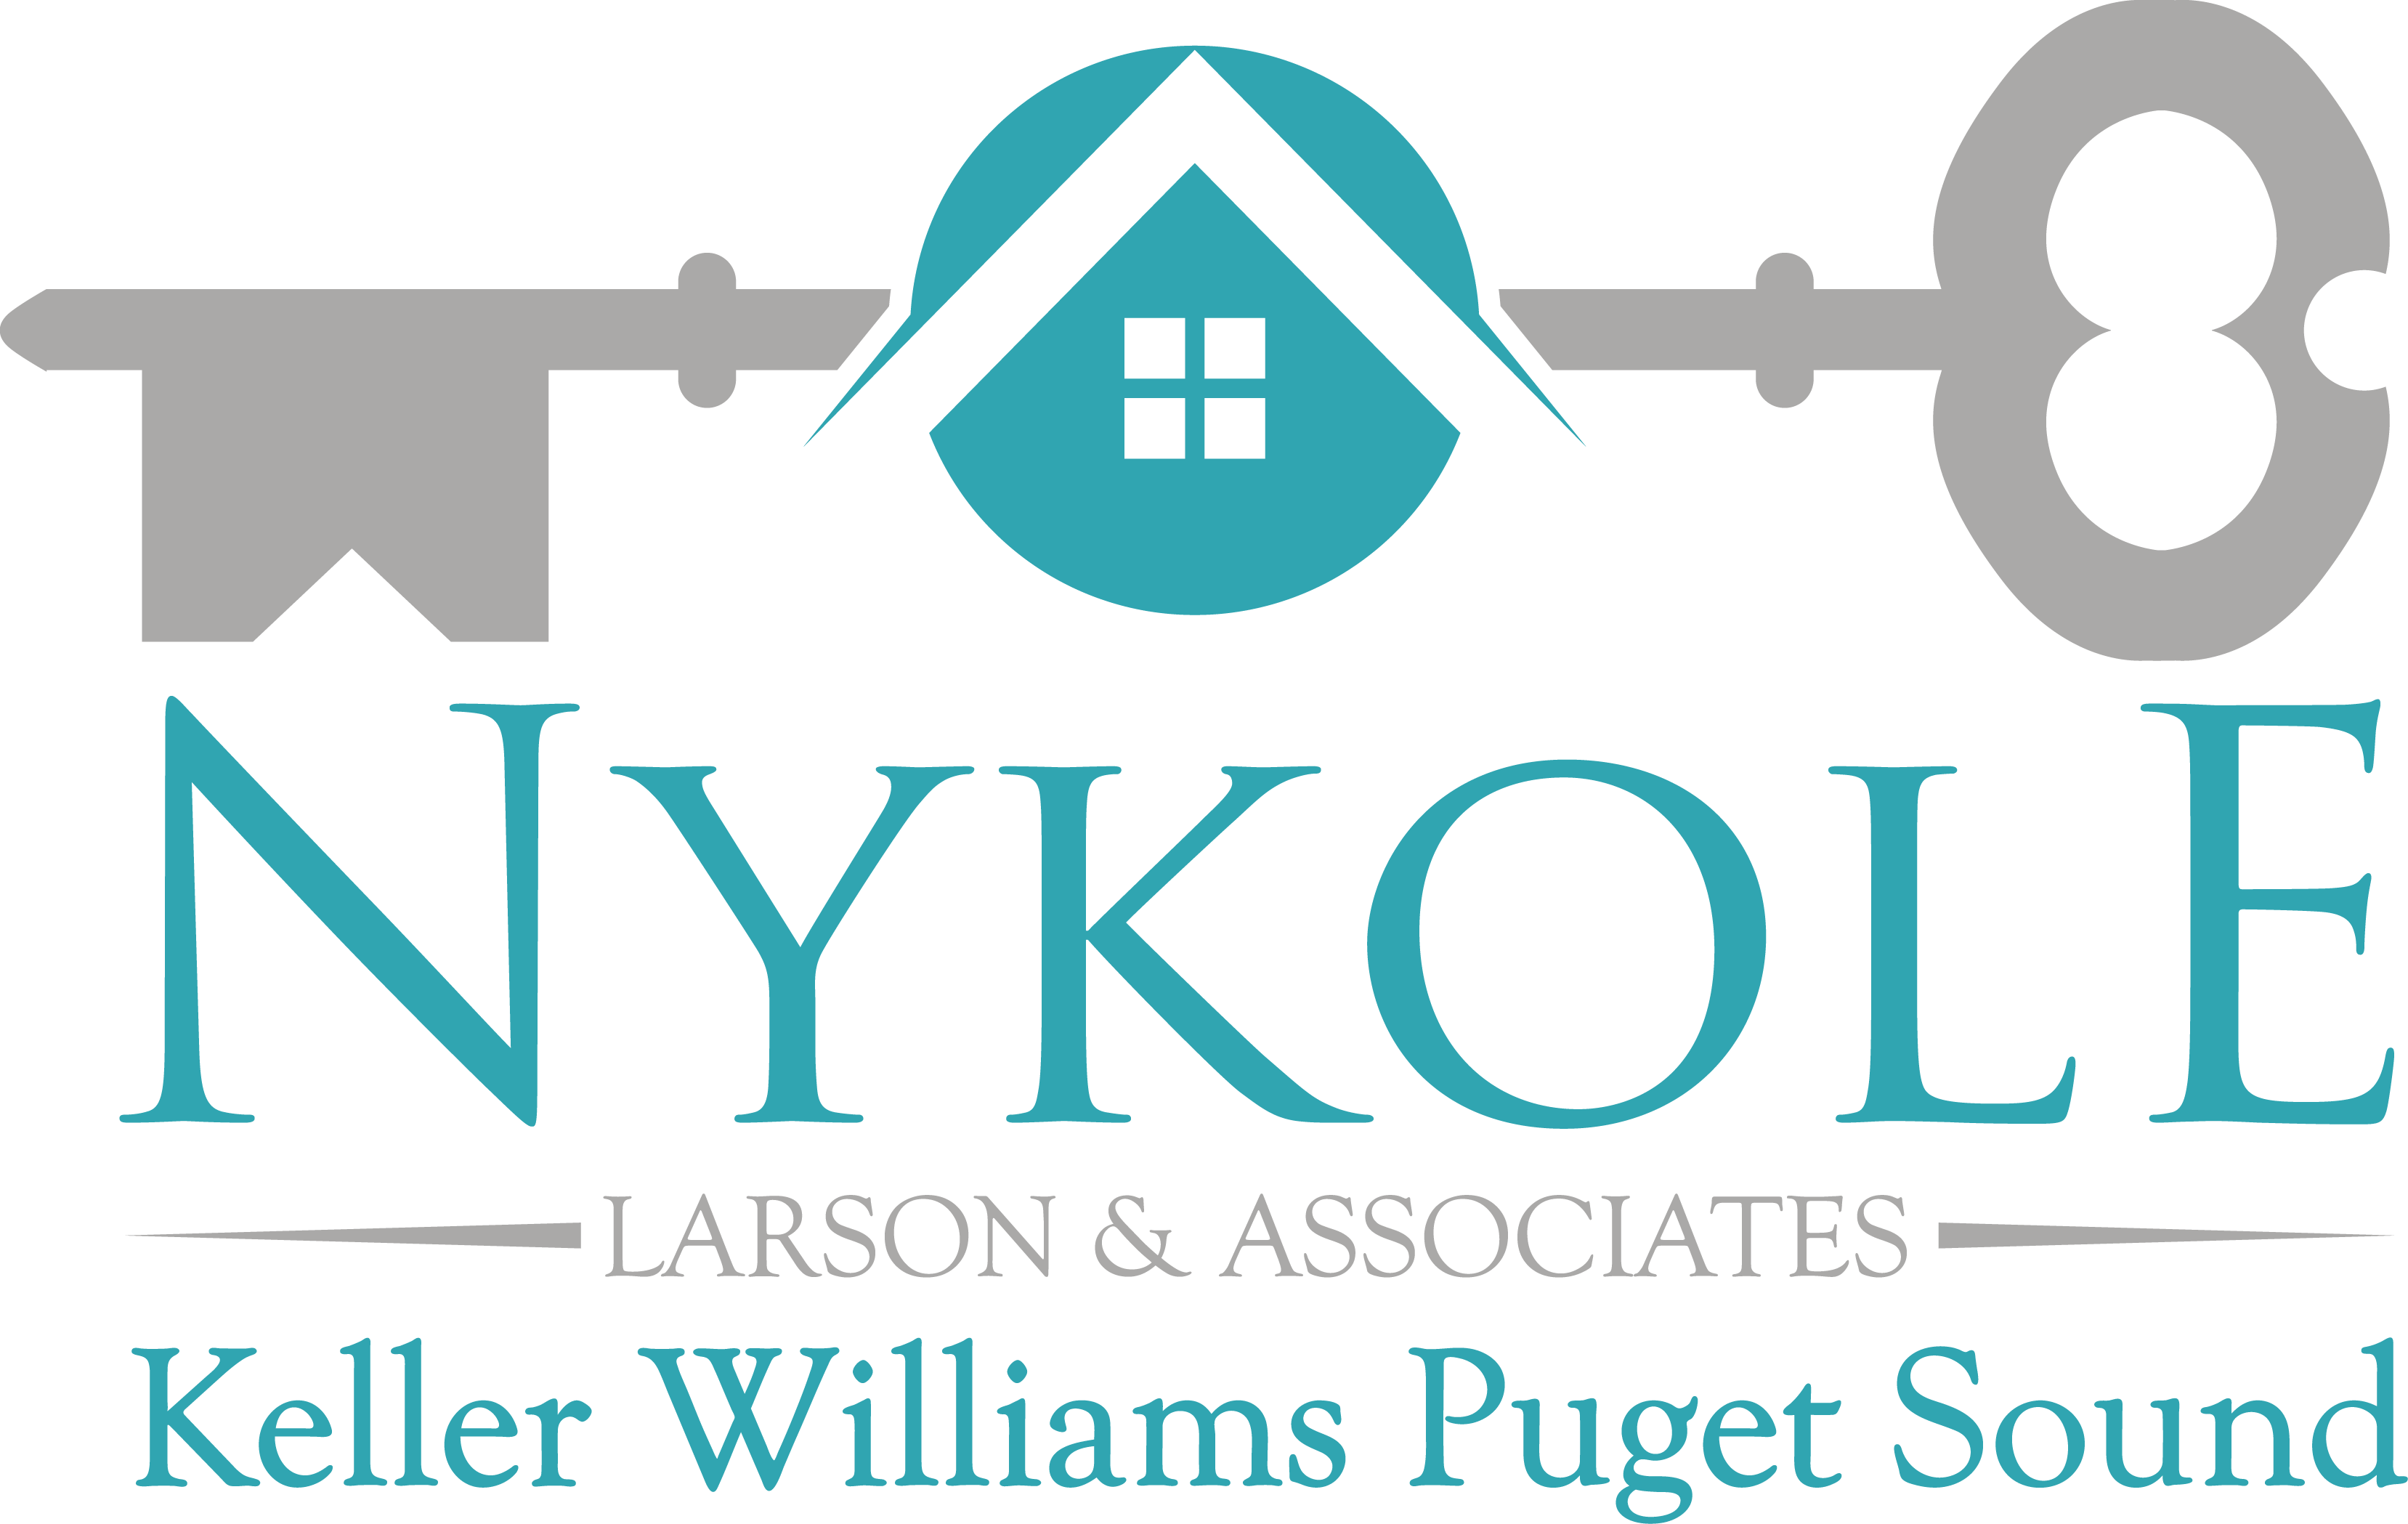 Nykole Larson & Associates, Keller Williams Puget Sound logo